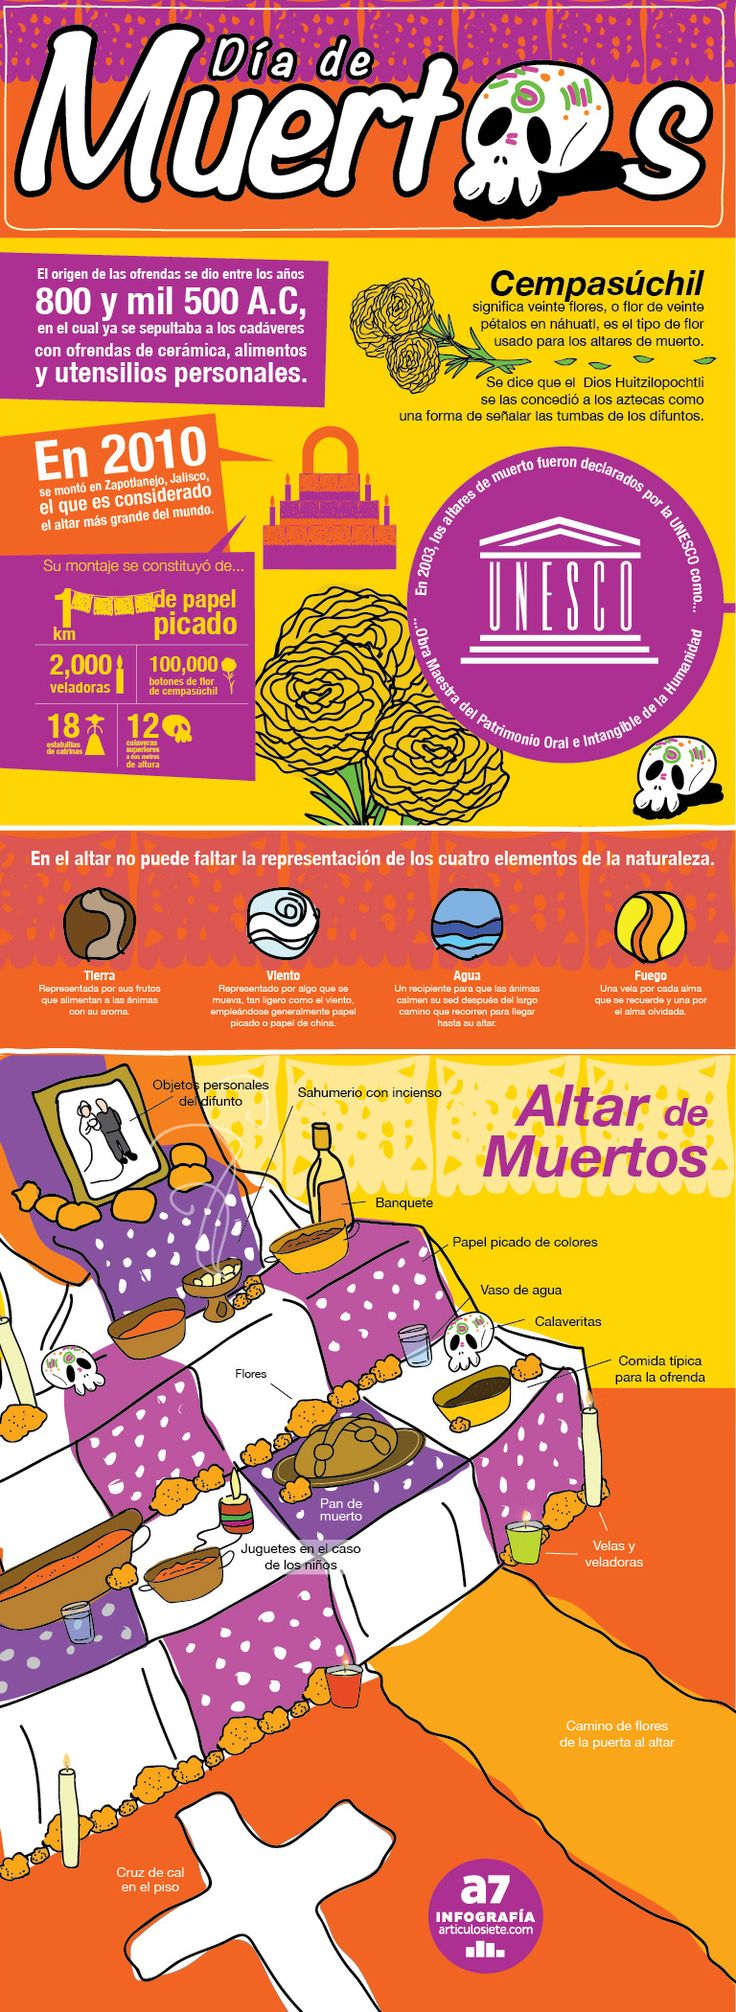 Another infographic in Spanish about Día de los Muertos.